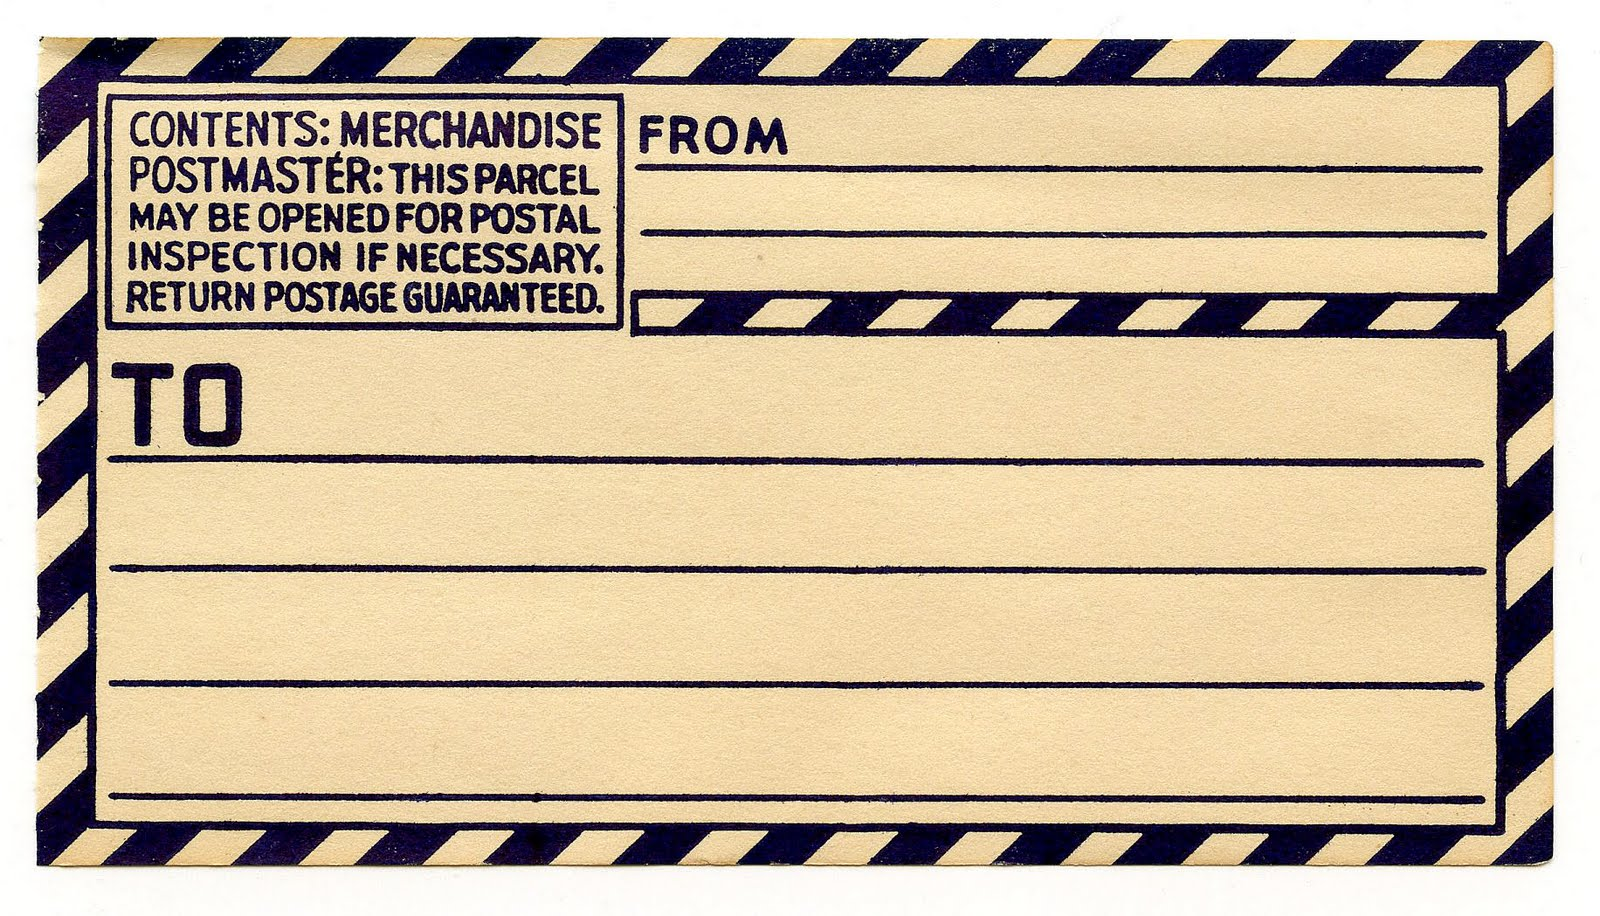 Vintage Clip Art Old Gummed Parcel Post Label The Graphics Fairy - Package mailing label template